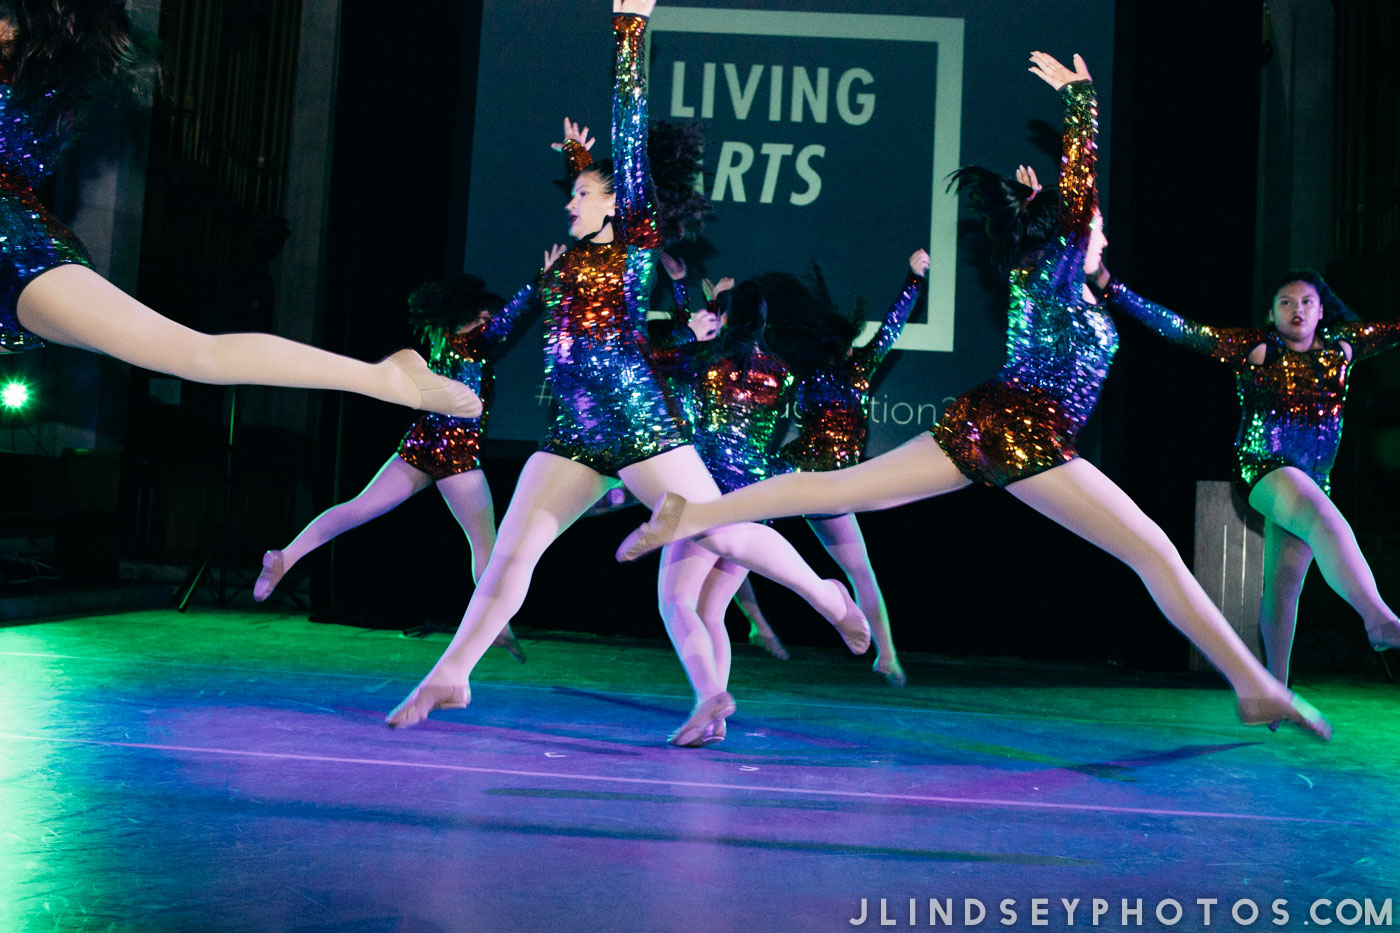 Living Arts' Dance Collage performs at Spark the Imagination 2017. Photo by Julianne Lindsey